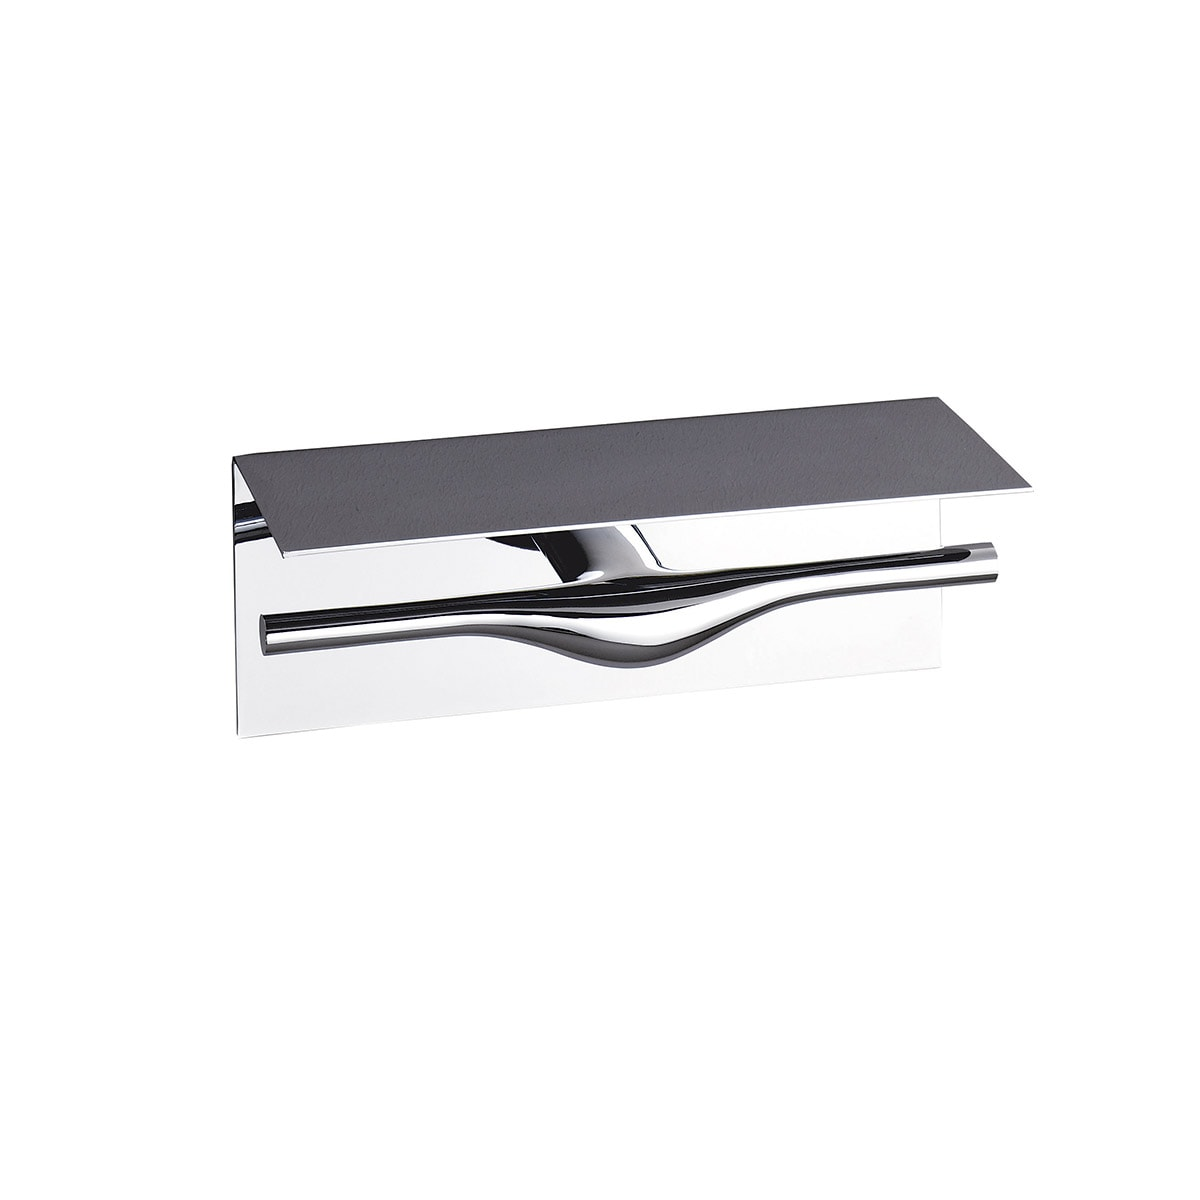 Istanbul Roll Holder – Double